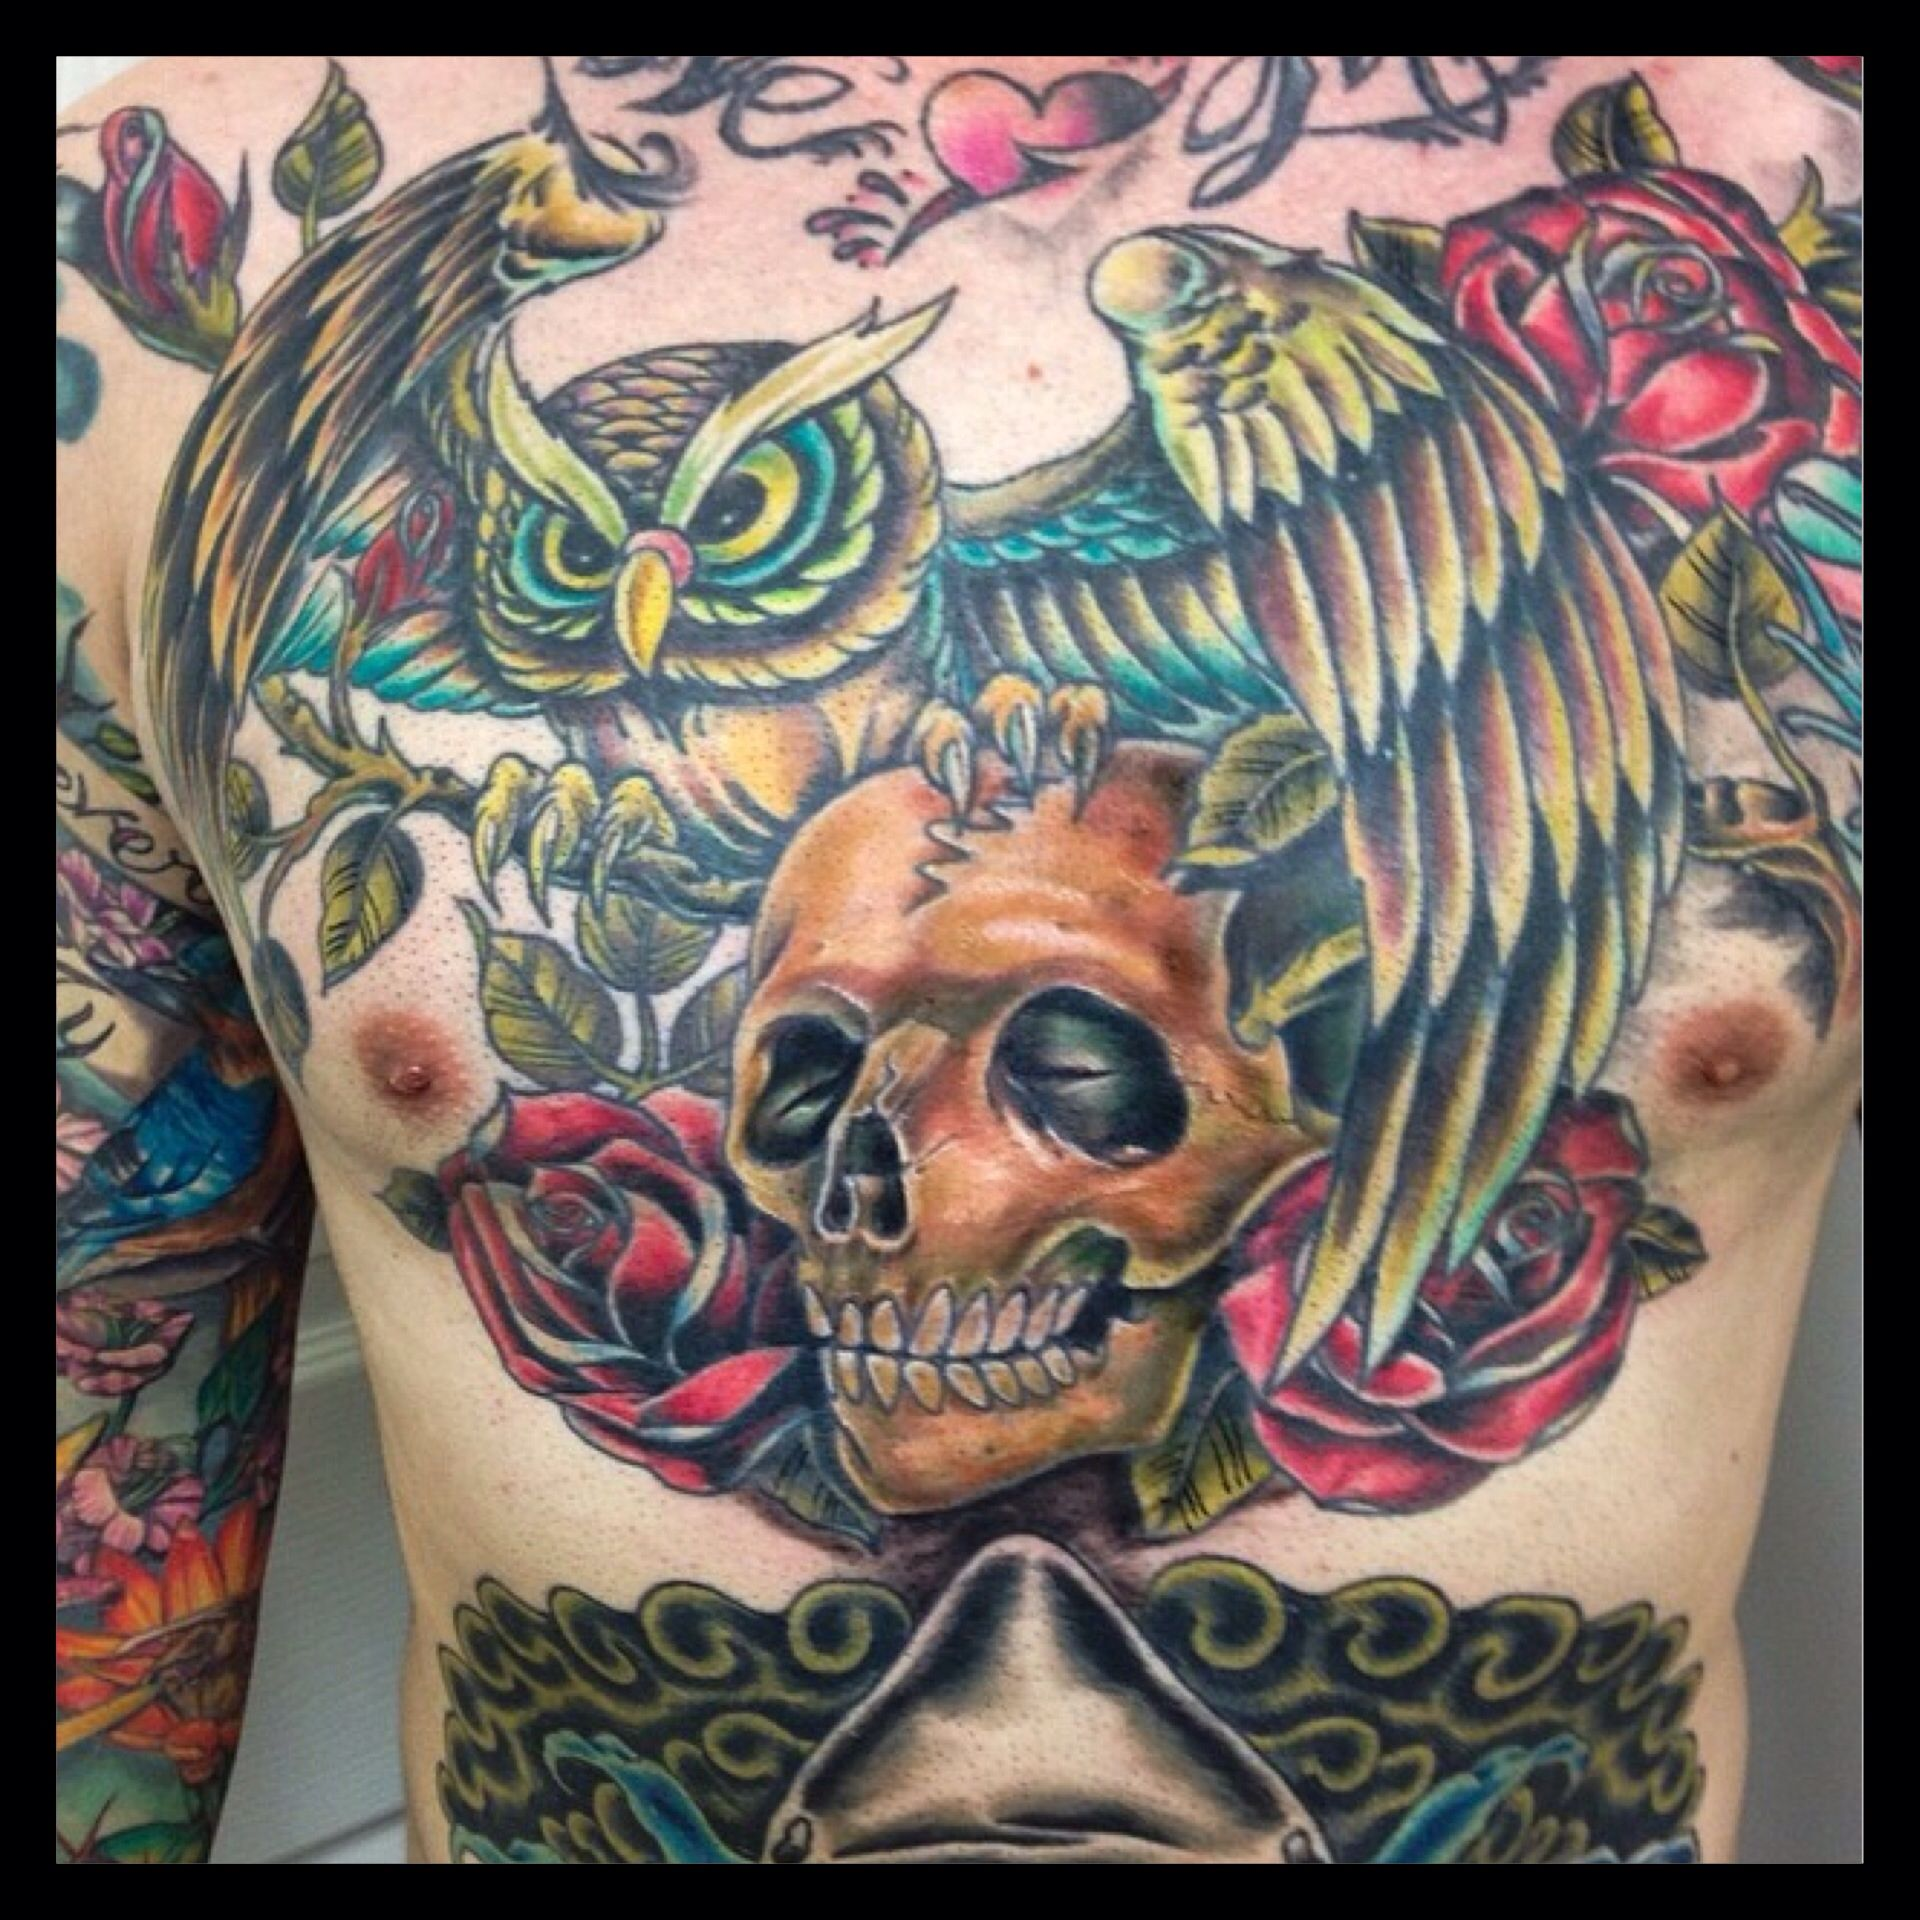 Owl, Skull & Roses Full Color Chest Piece Tattoo By Alex